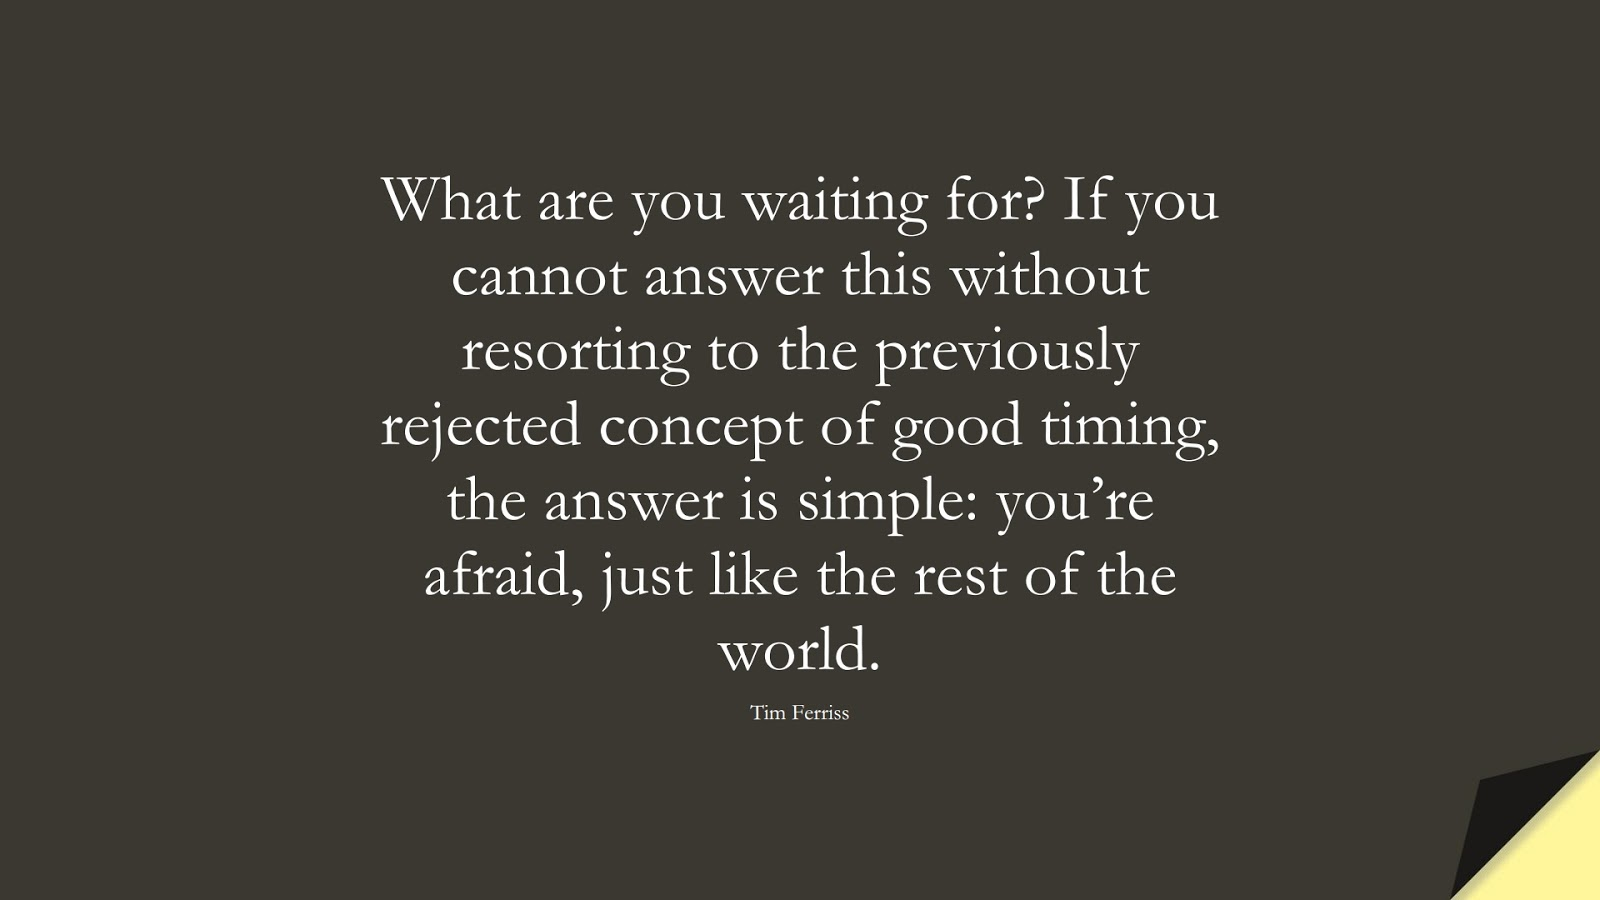 What are you waiting for? If you cannot answer this without resorting to the previously rejected concept of good timing, the answer is simple: you're afraid, just like the rest of the world. (Tim Ferriss);  #TimFerrissQuotes